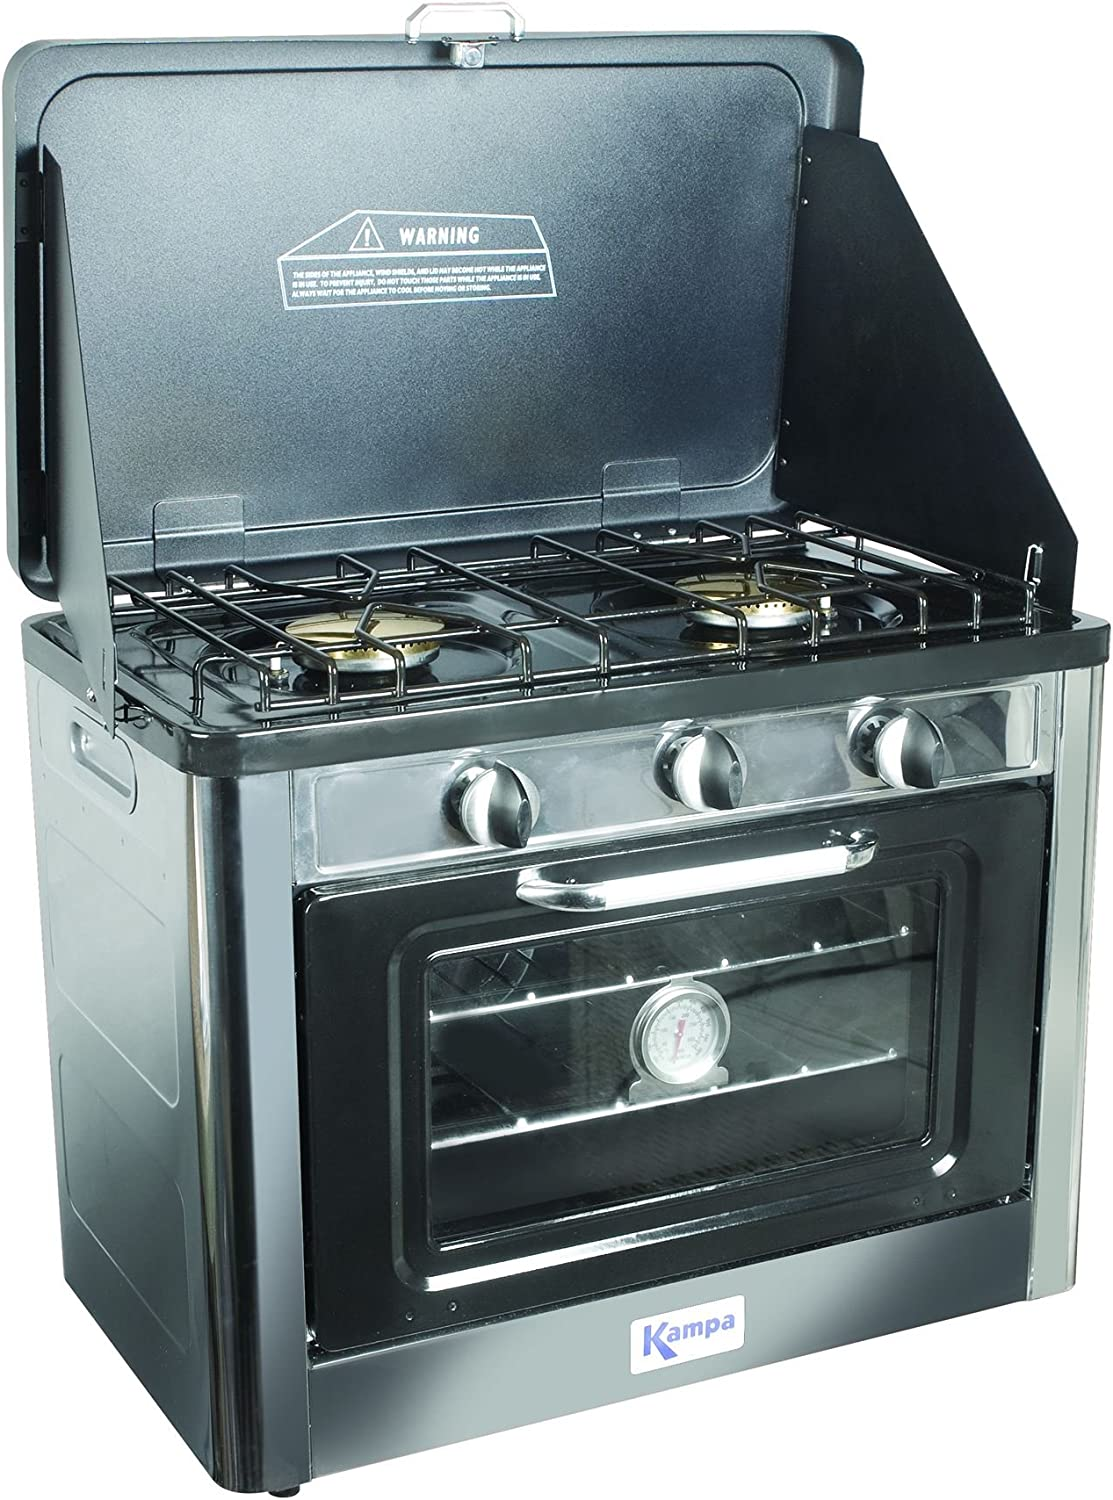 Kampa Roast Master Double Gas Hob and Oven